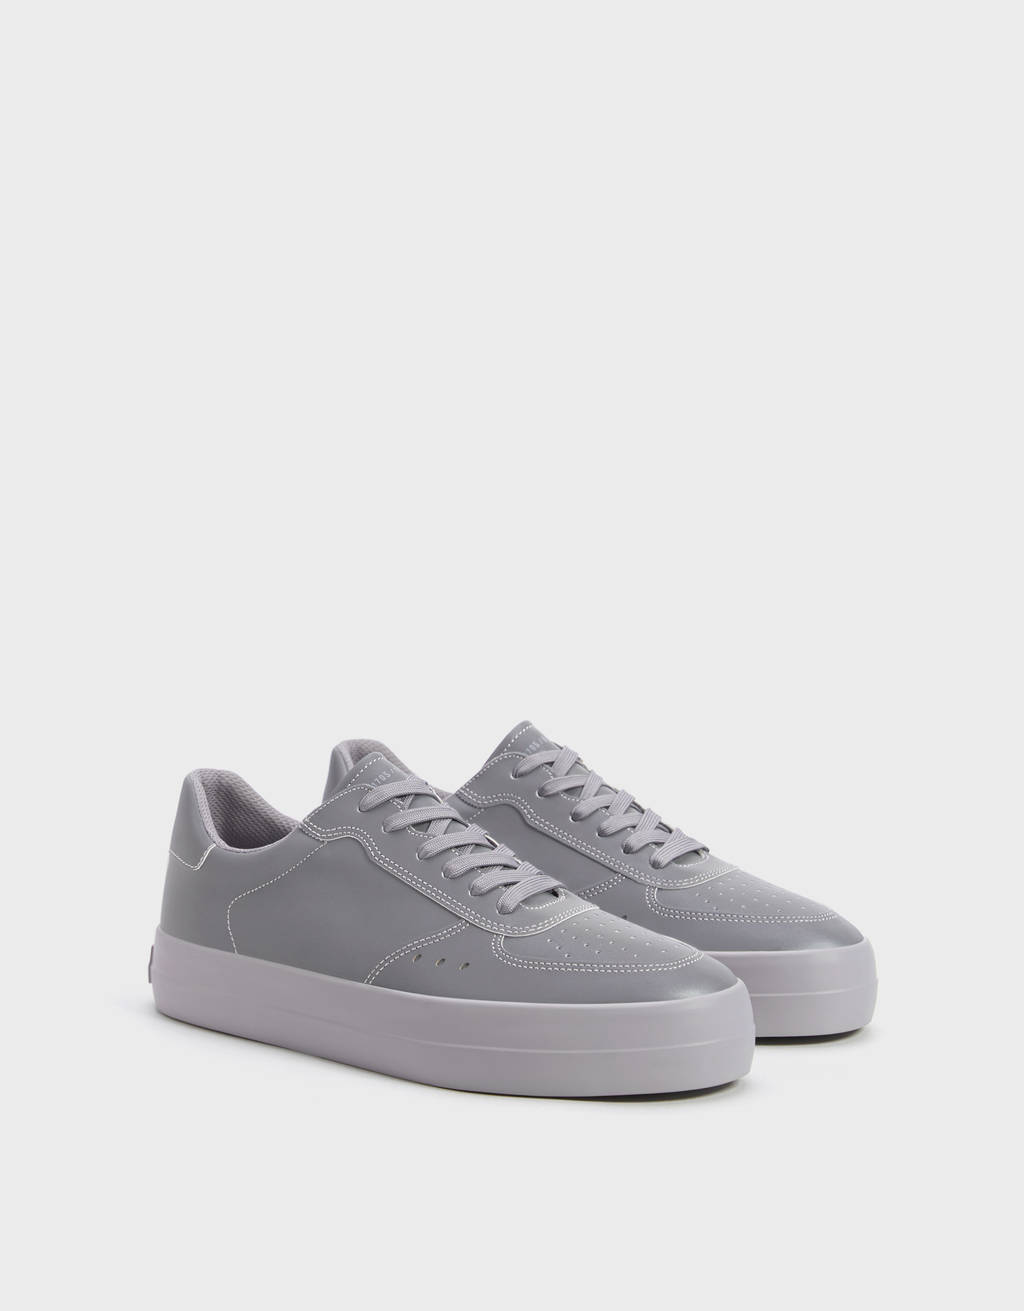 Reflecterende sneakers heren